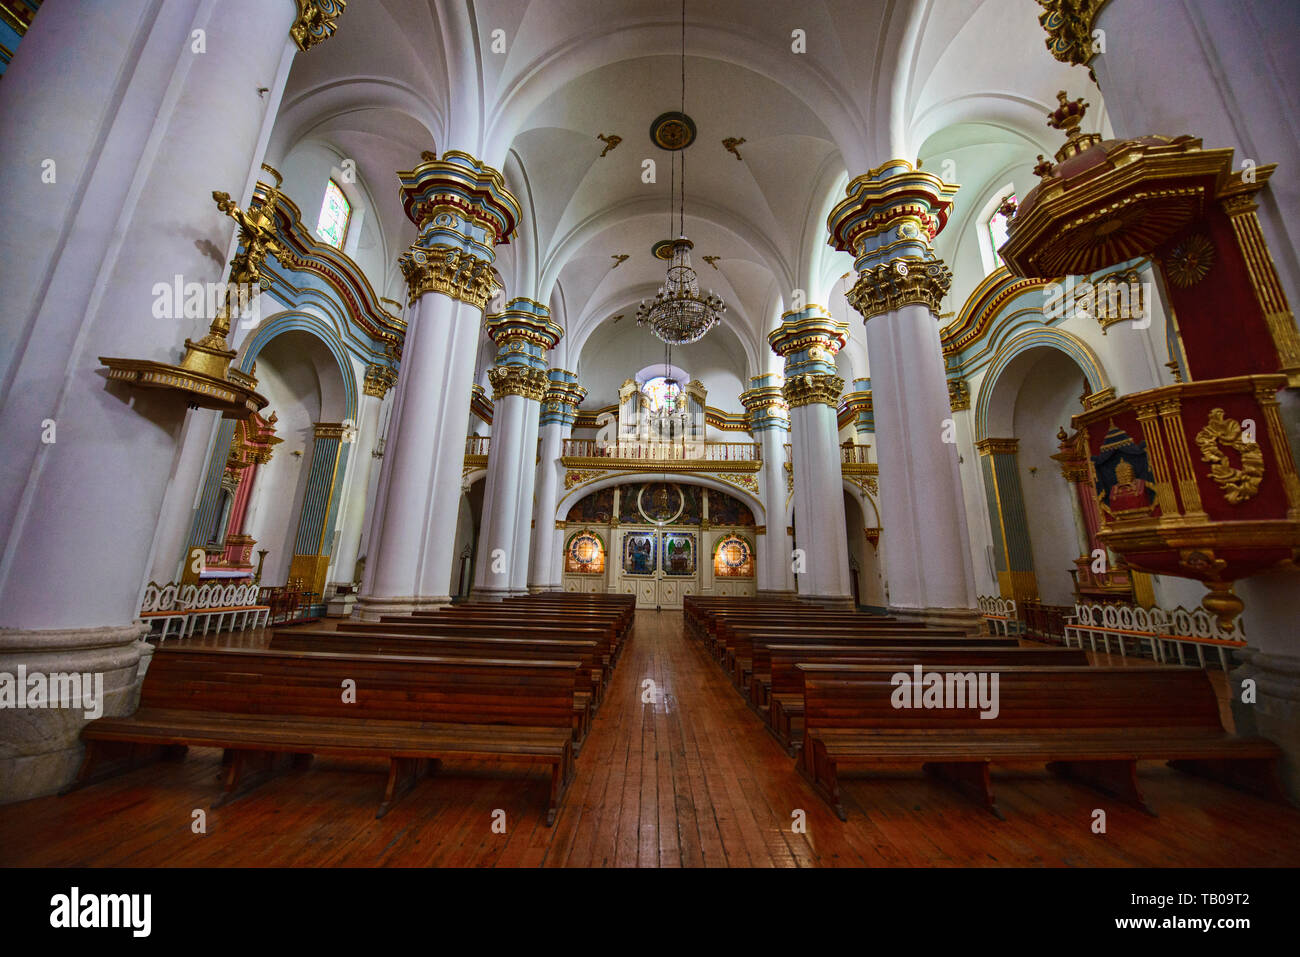 Interior of the Cathedral Basilica of Our Lady of Peace (Potosí Cathedral), Potosí, Bolivia - Stock Image